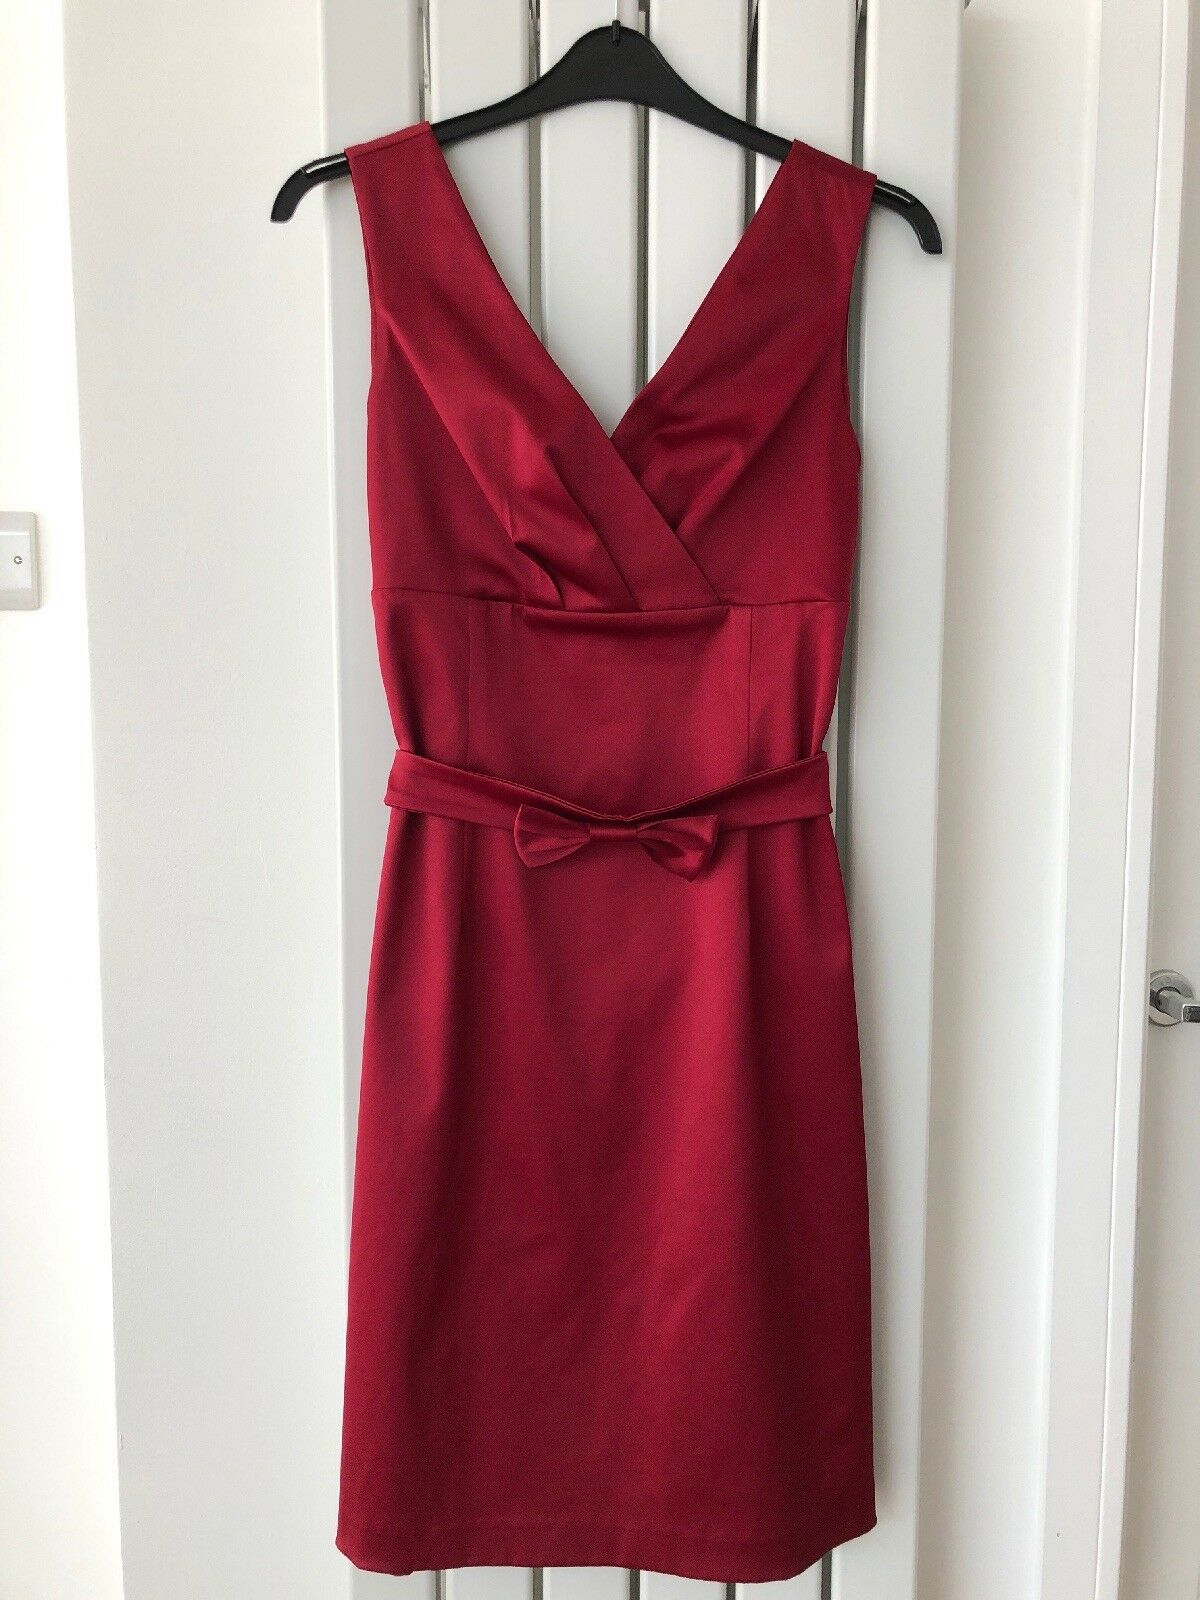 Kaliko Dress Size 16 Red Satin Lined Evening Party Occasion